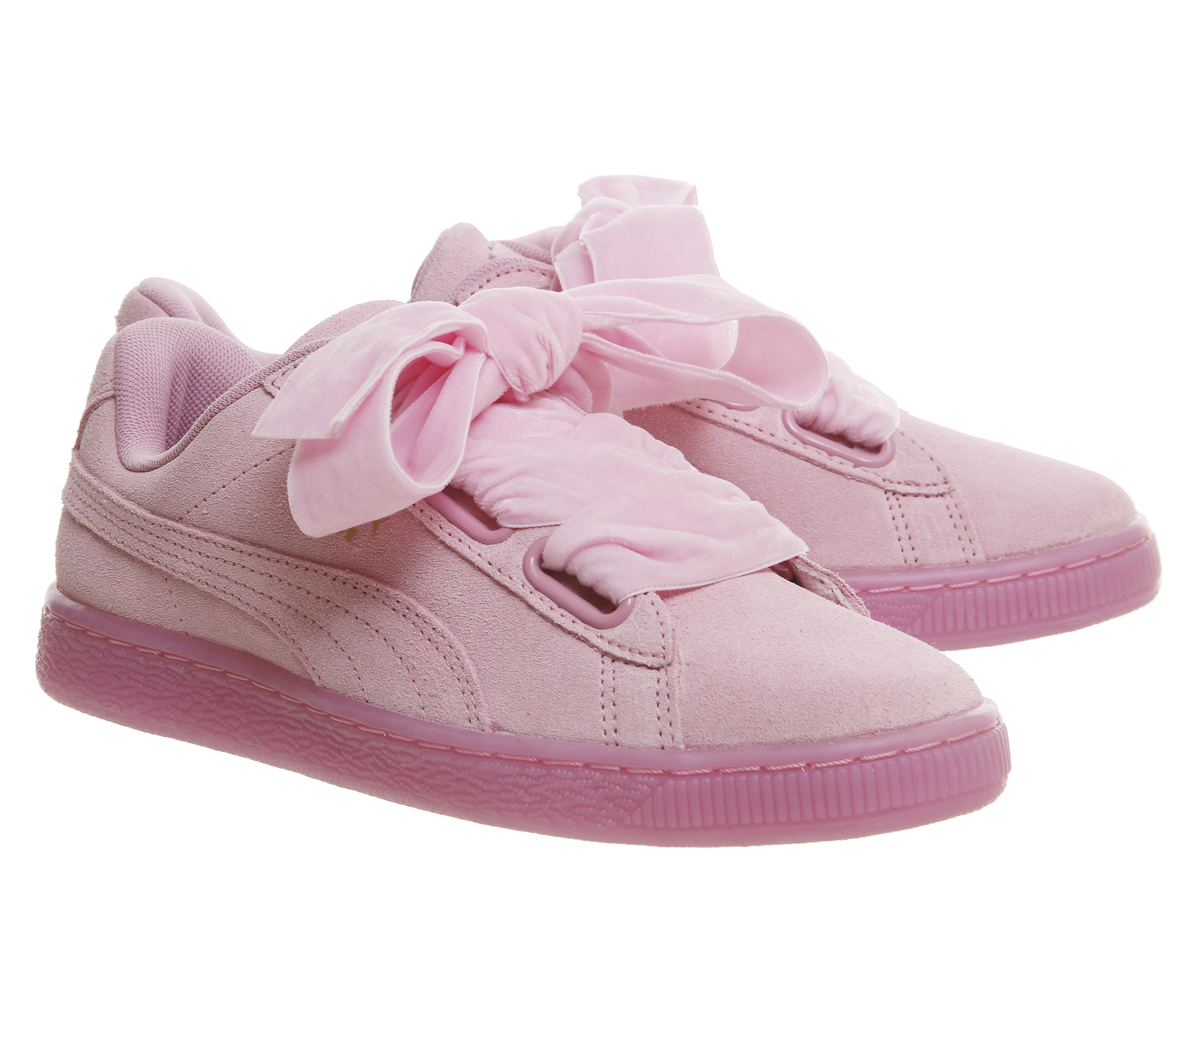 womens puma suede heart prism pink trainers shoes ebay. Black Bedroom Furniture Sets. Home Design Ideas